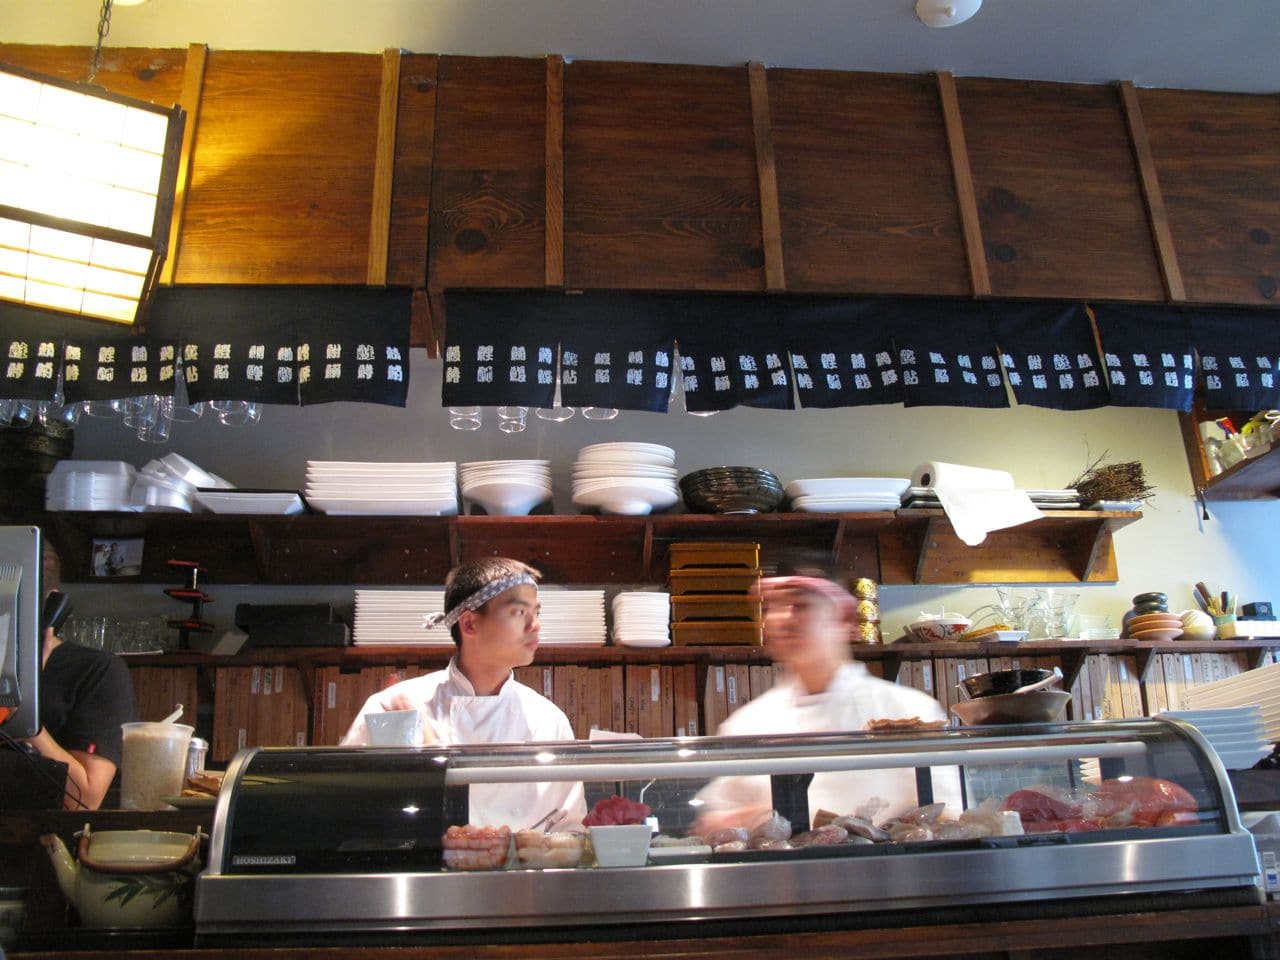 Sushi chefs prepare classic Japanese dishes at Japango Toronto.